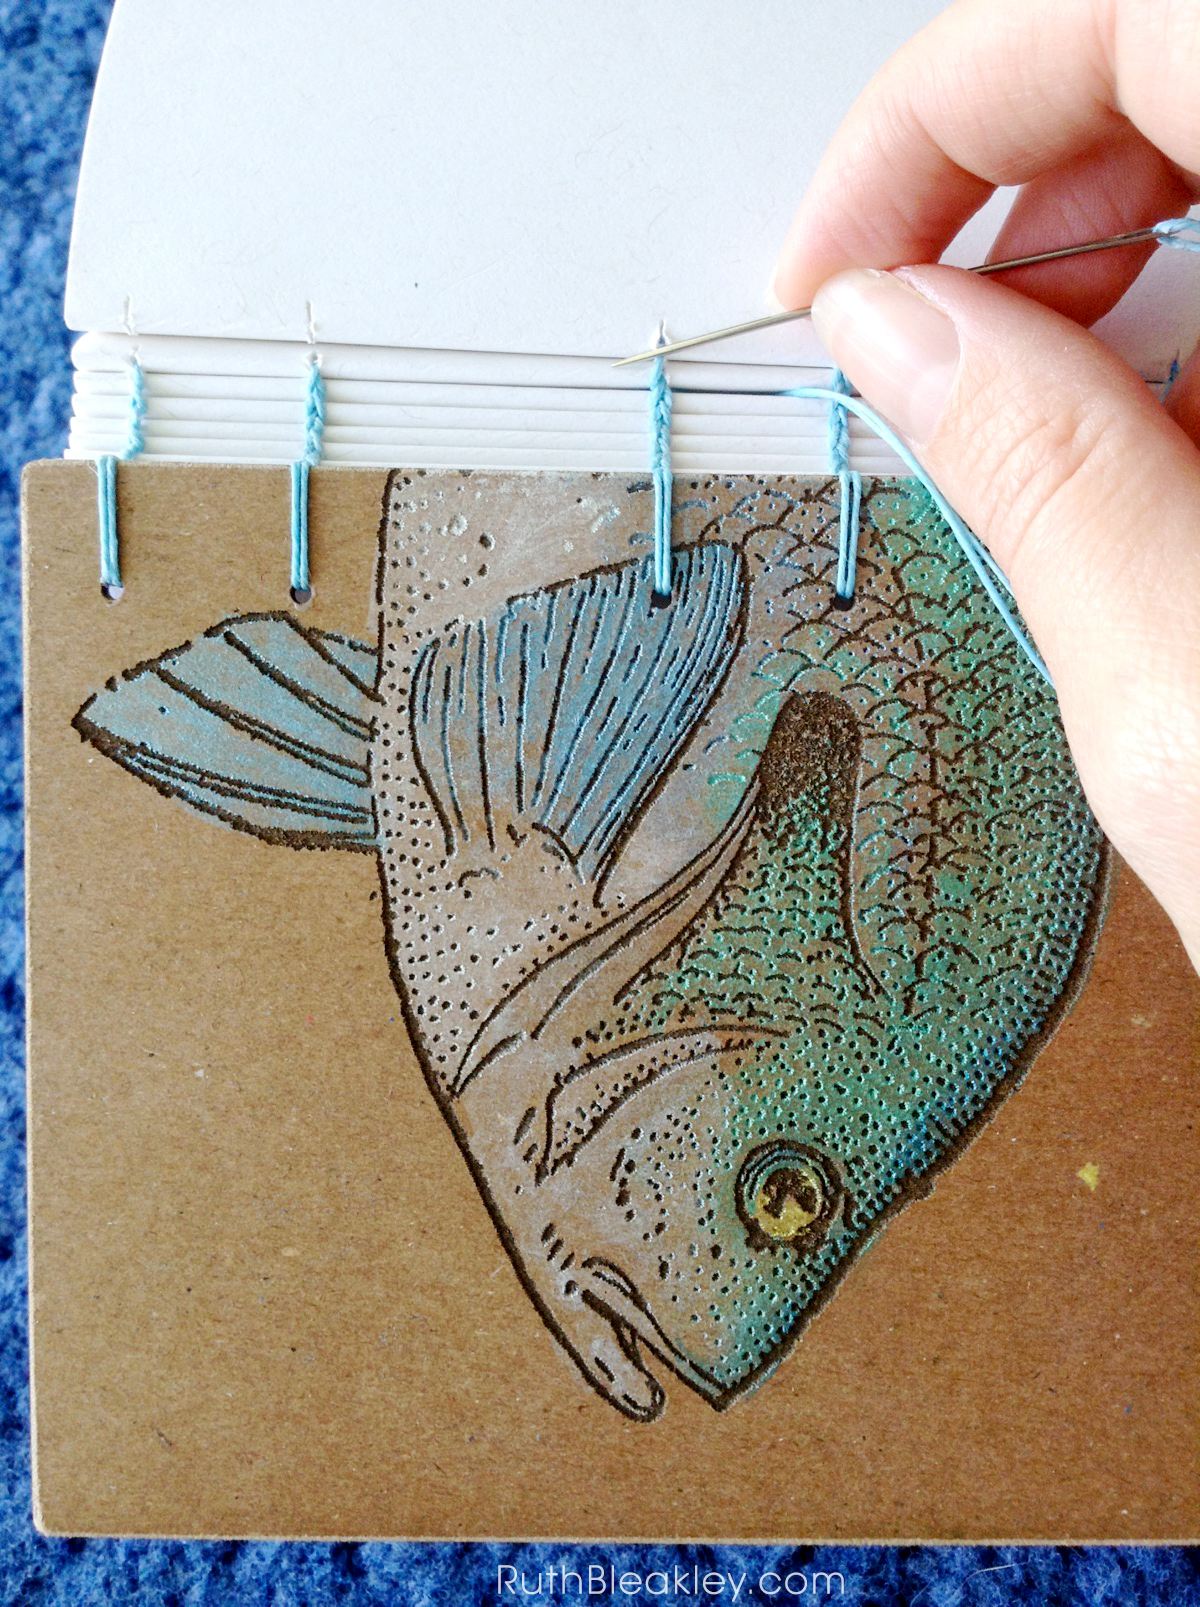 Stitching a journal together - handmade fish book created by Ruth Bleakley